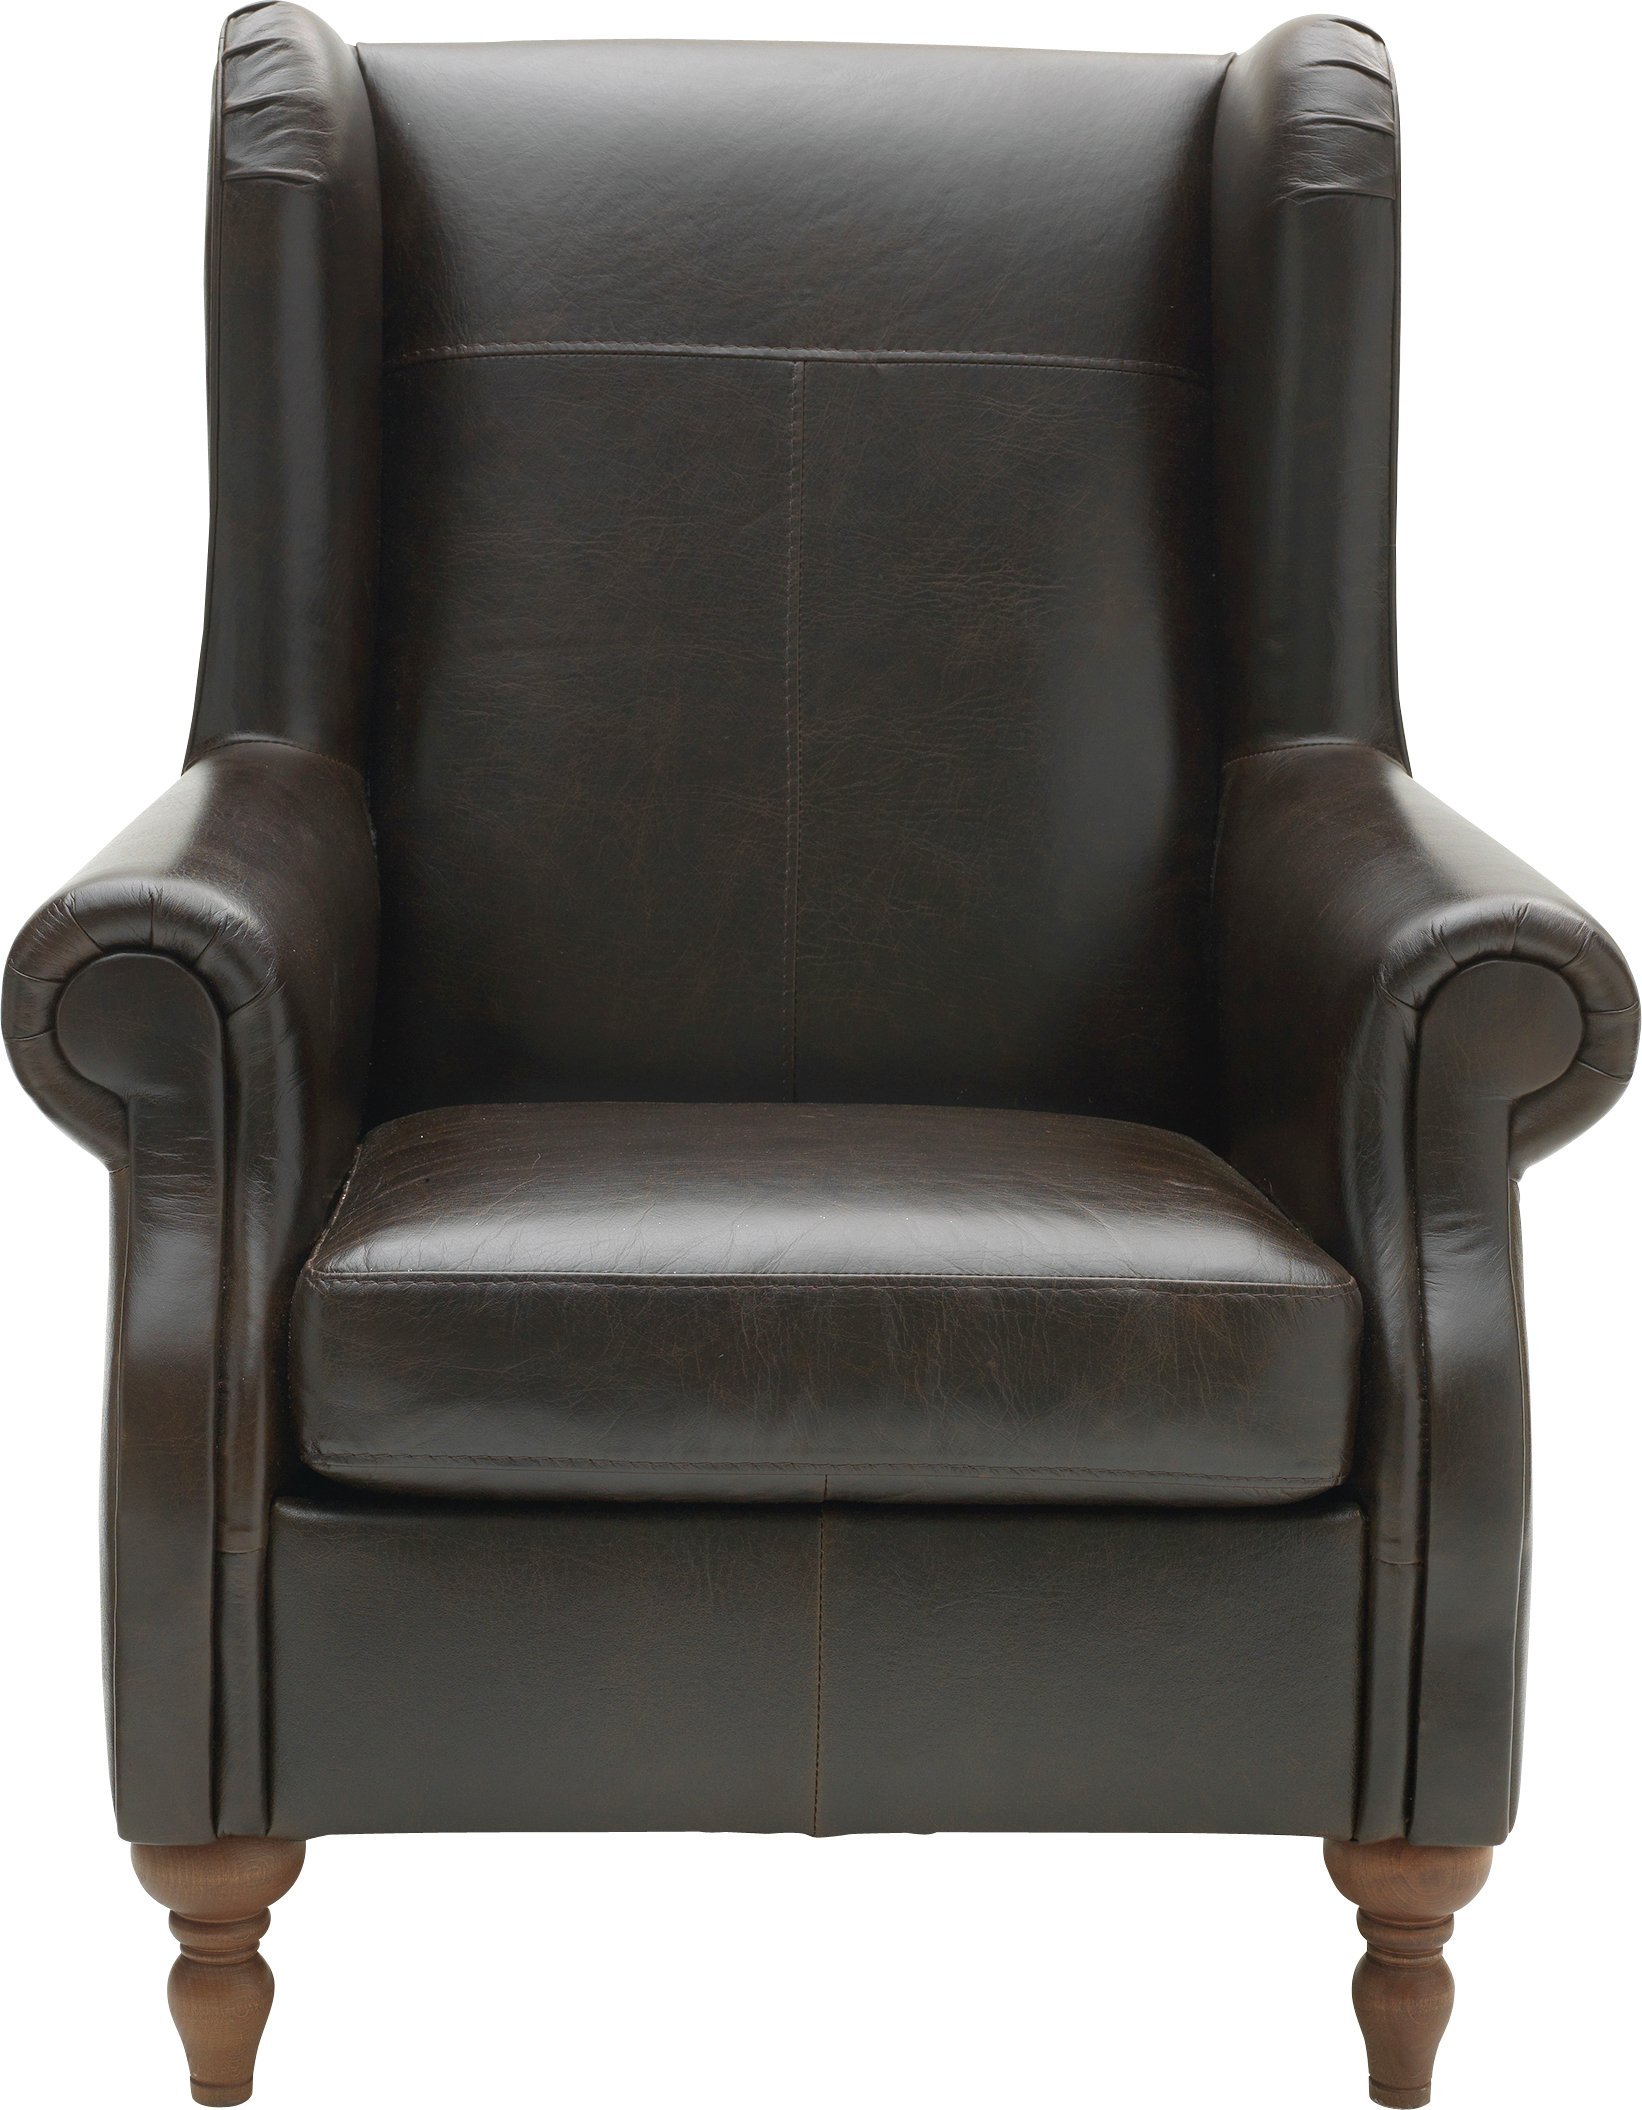 dark brown leather chair large armless slipcover results for armchair argos home argyll high back